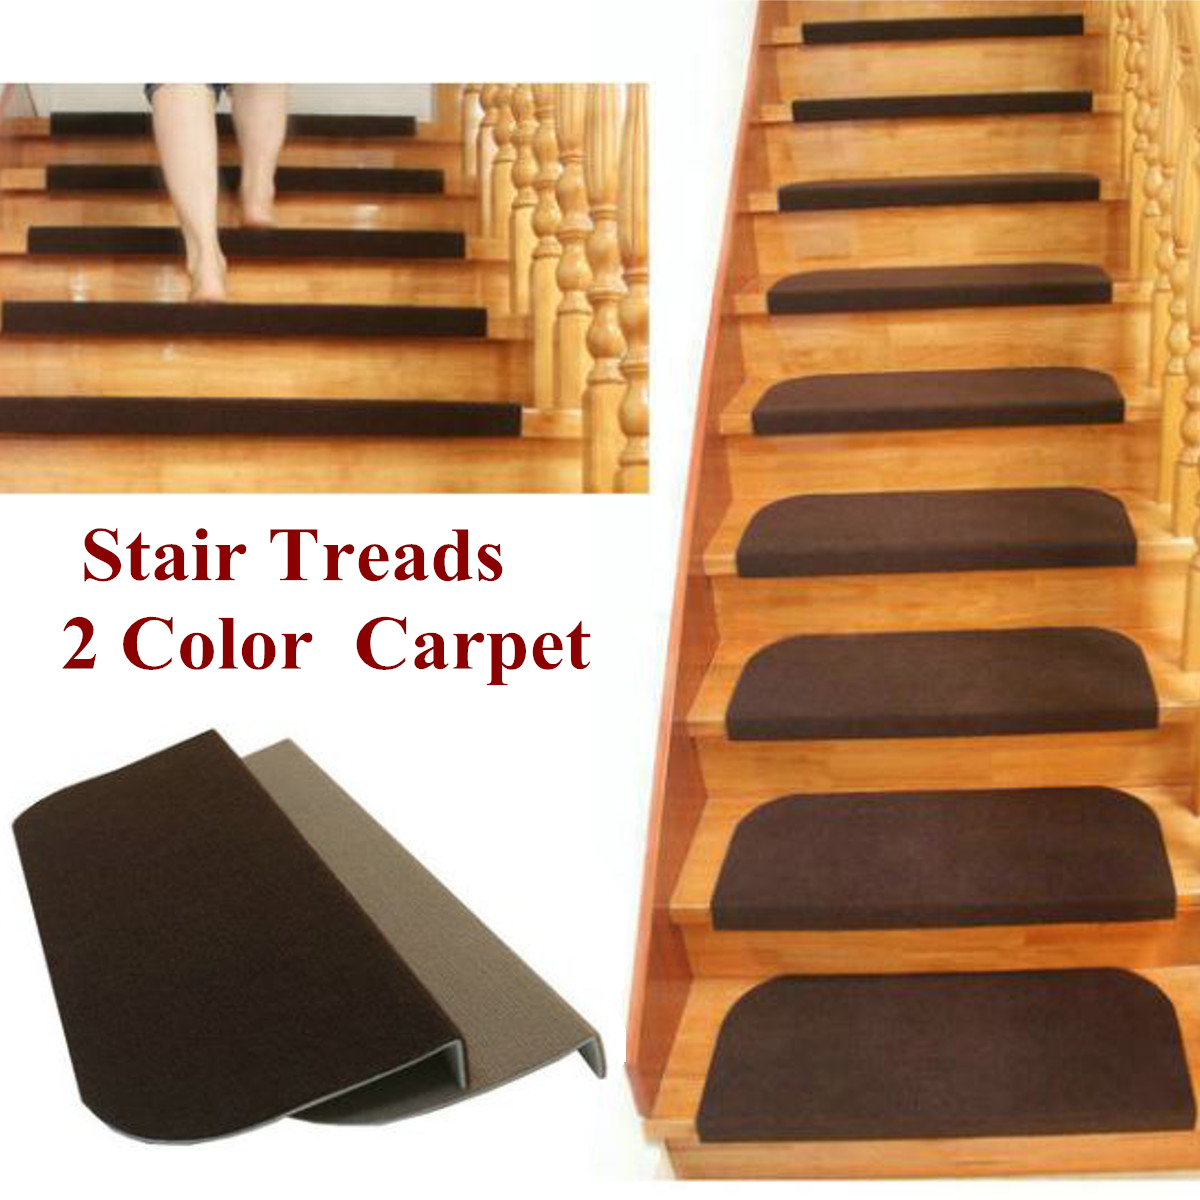 1Pcs Non Slip Carpet Stair Treads Mats Staircase Step Rug Protection Cover  Set